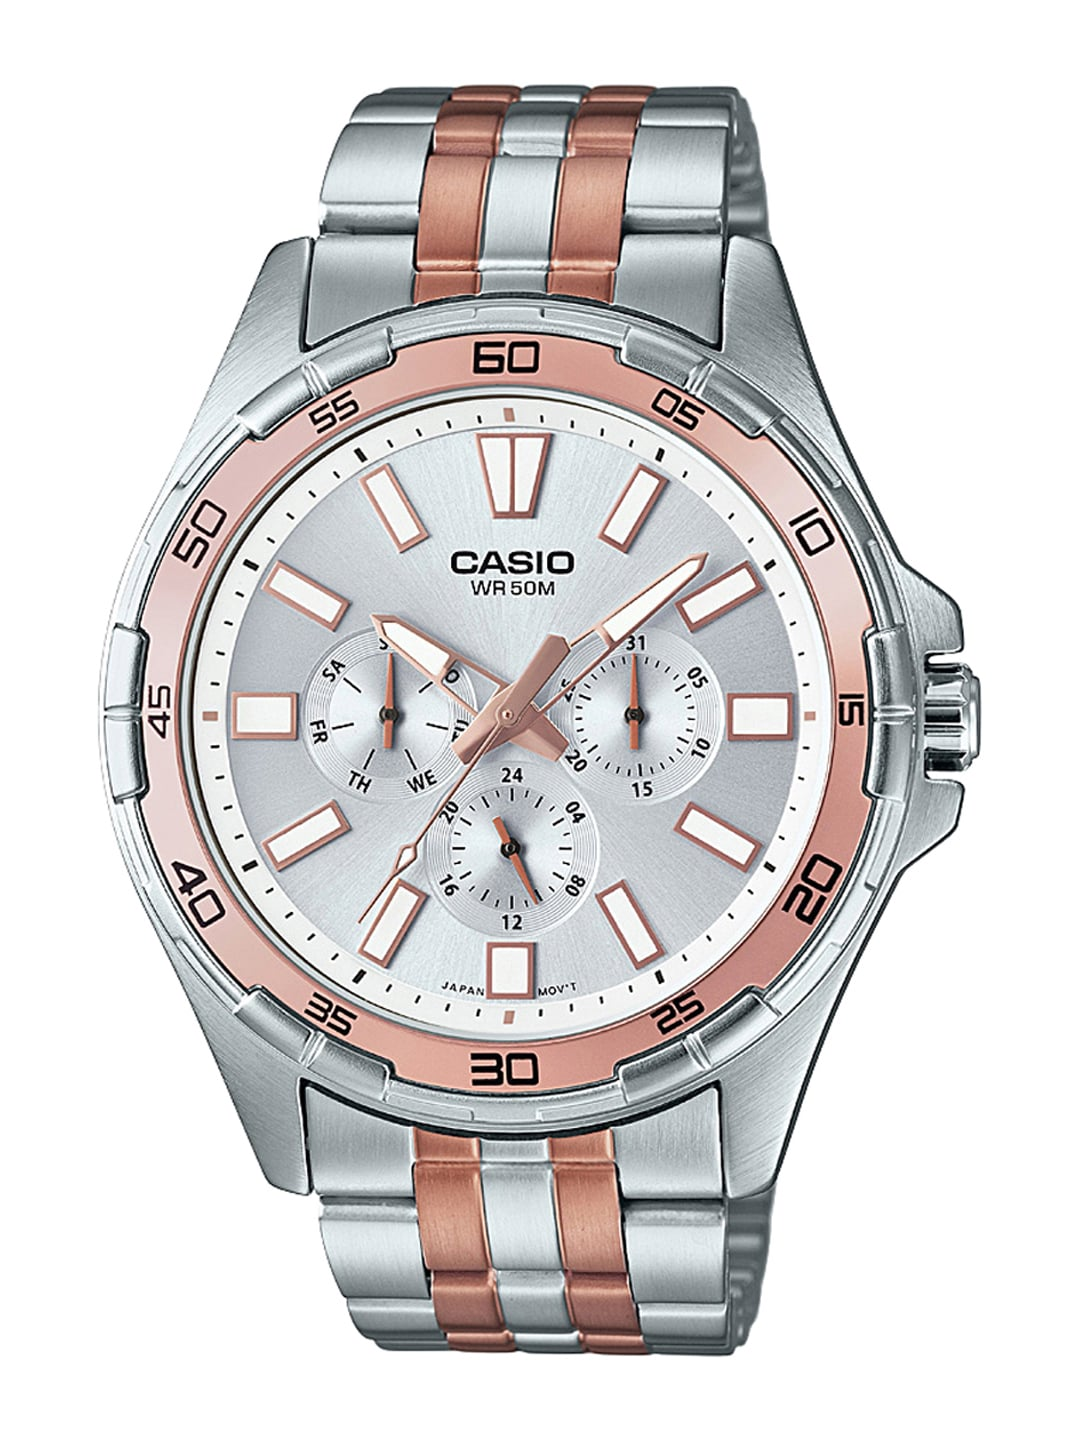 CASIO Enticer Men Silver-Toned Dial Watch A1157 image